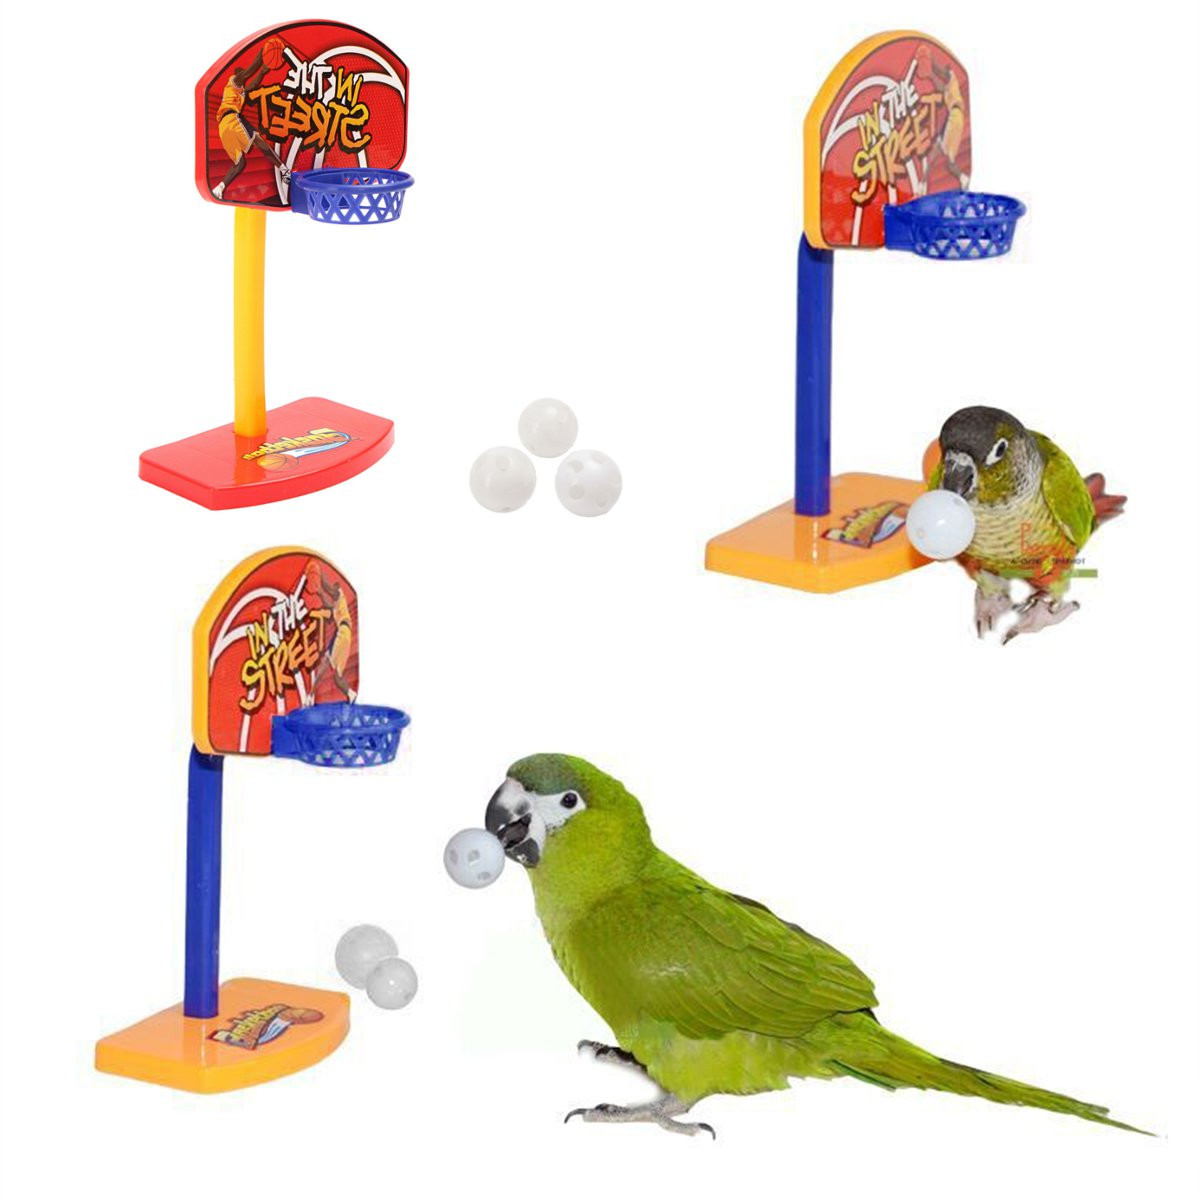 3Pcs Pet Birds Chew Toy Parakeet Bell Balls Parrot Toys Birdie Basketball Hoop Props Pet Parrot Toys Brinquedos Product Supplies(China (Mainland))